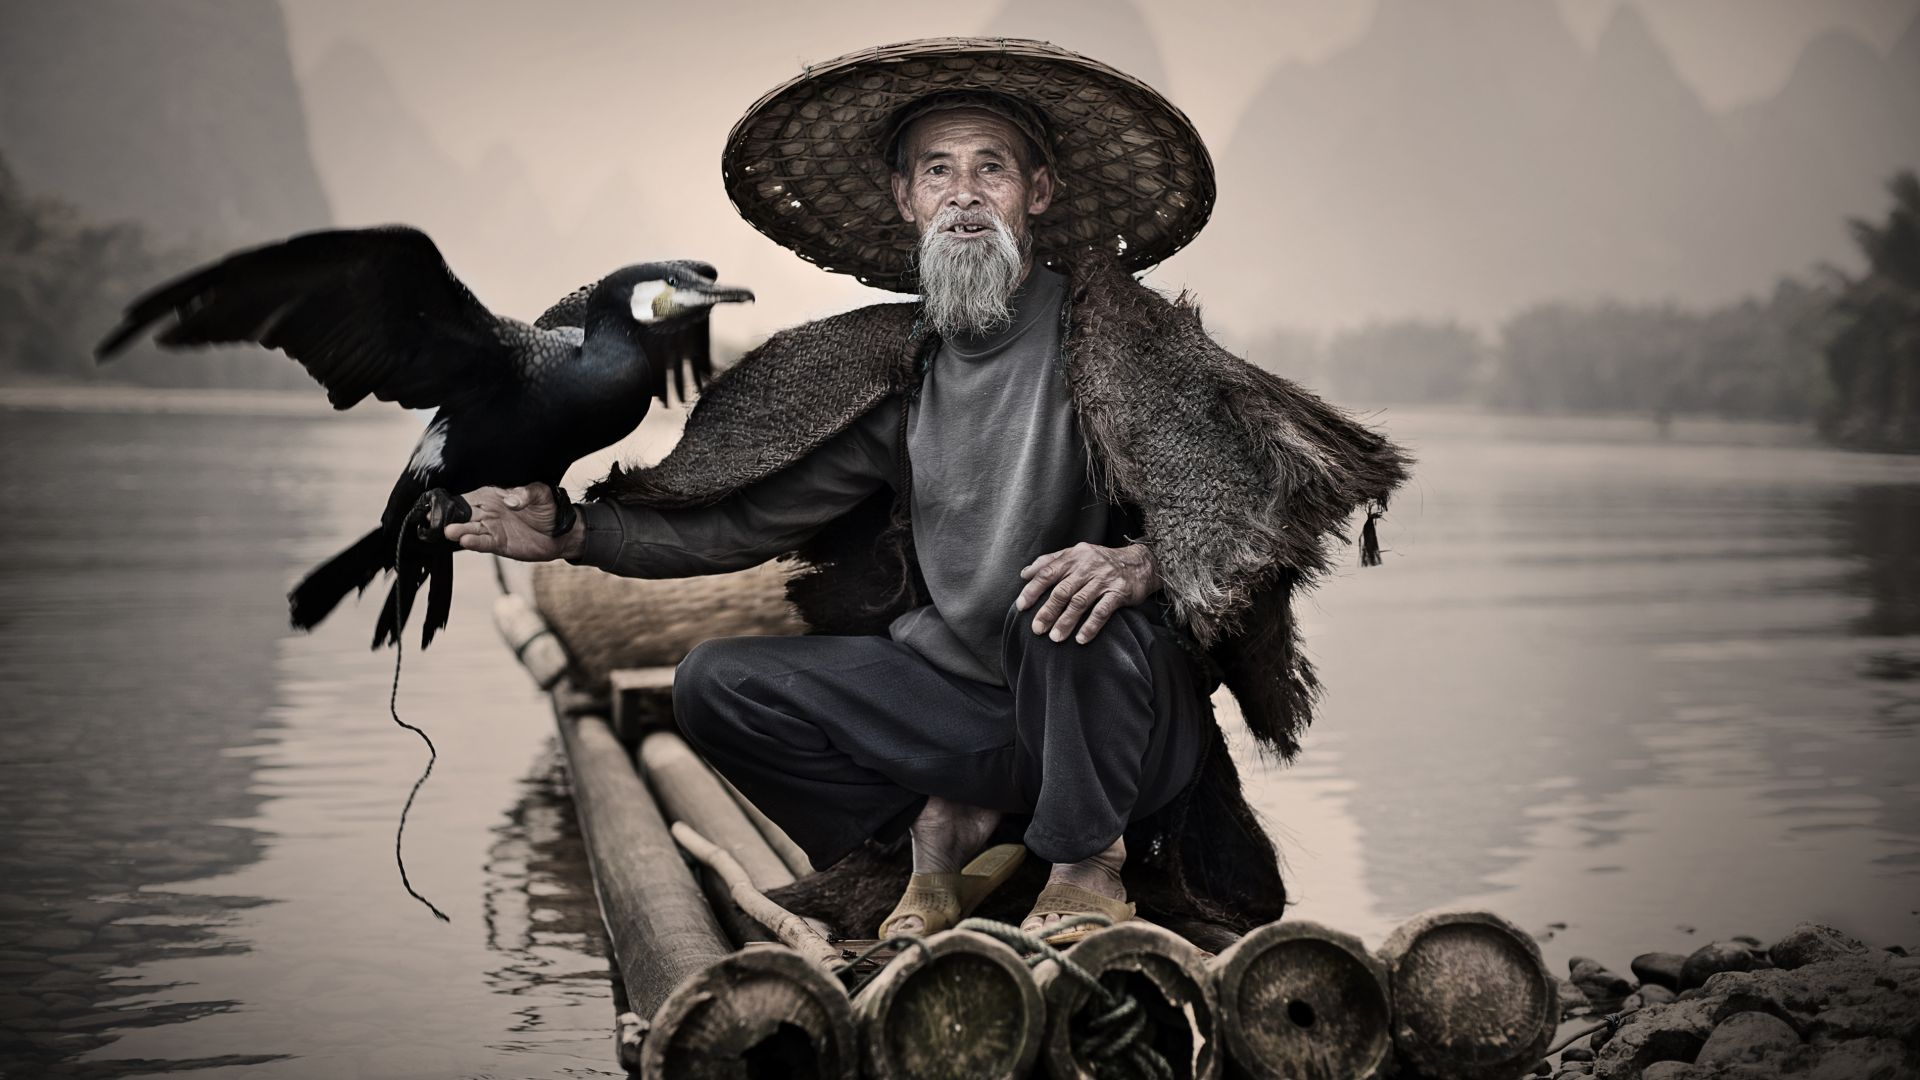 Баклан, Синпин, Китай, птица, Cormorant, Li-River, Xingping, China, fishing village, bird, National Geographic Traveler Photo Contest (horizontal)